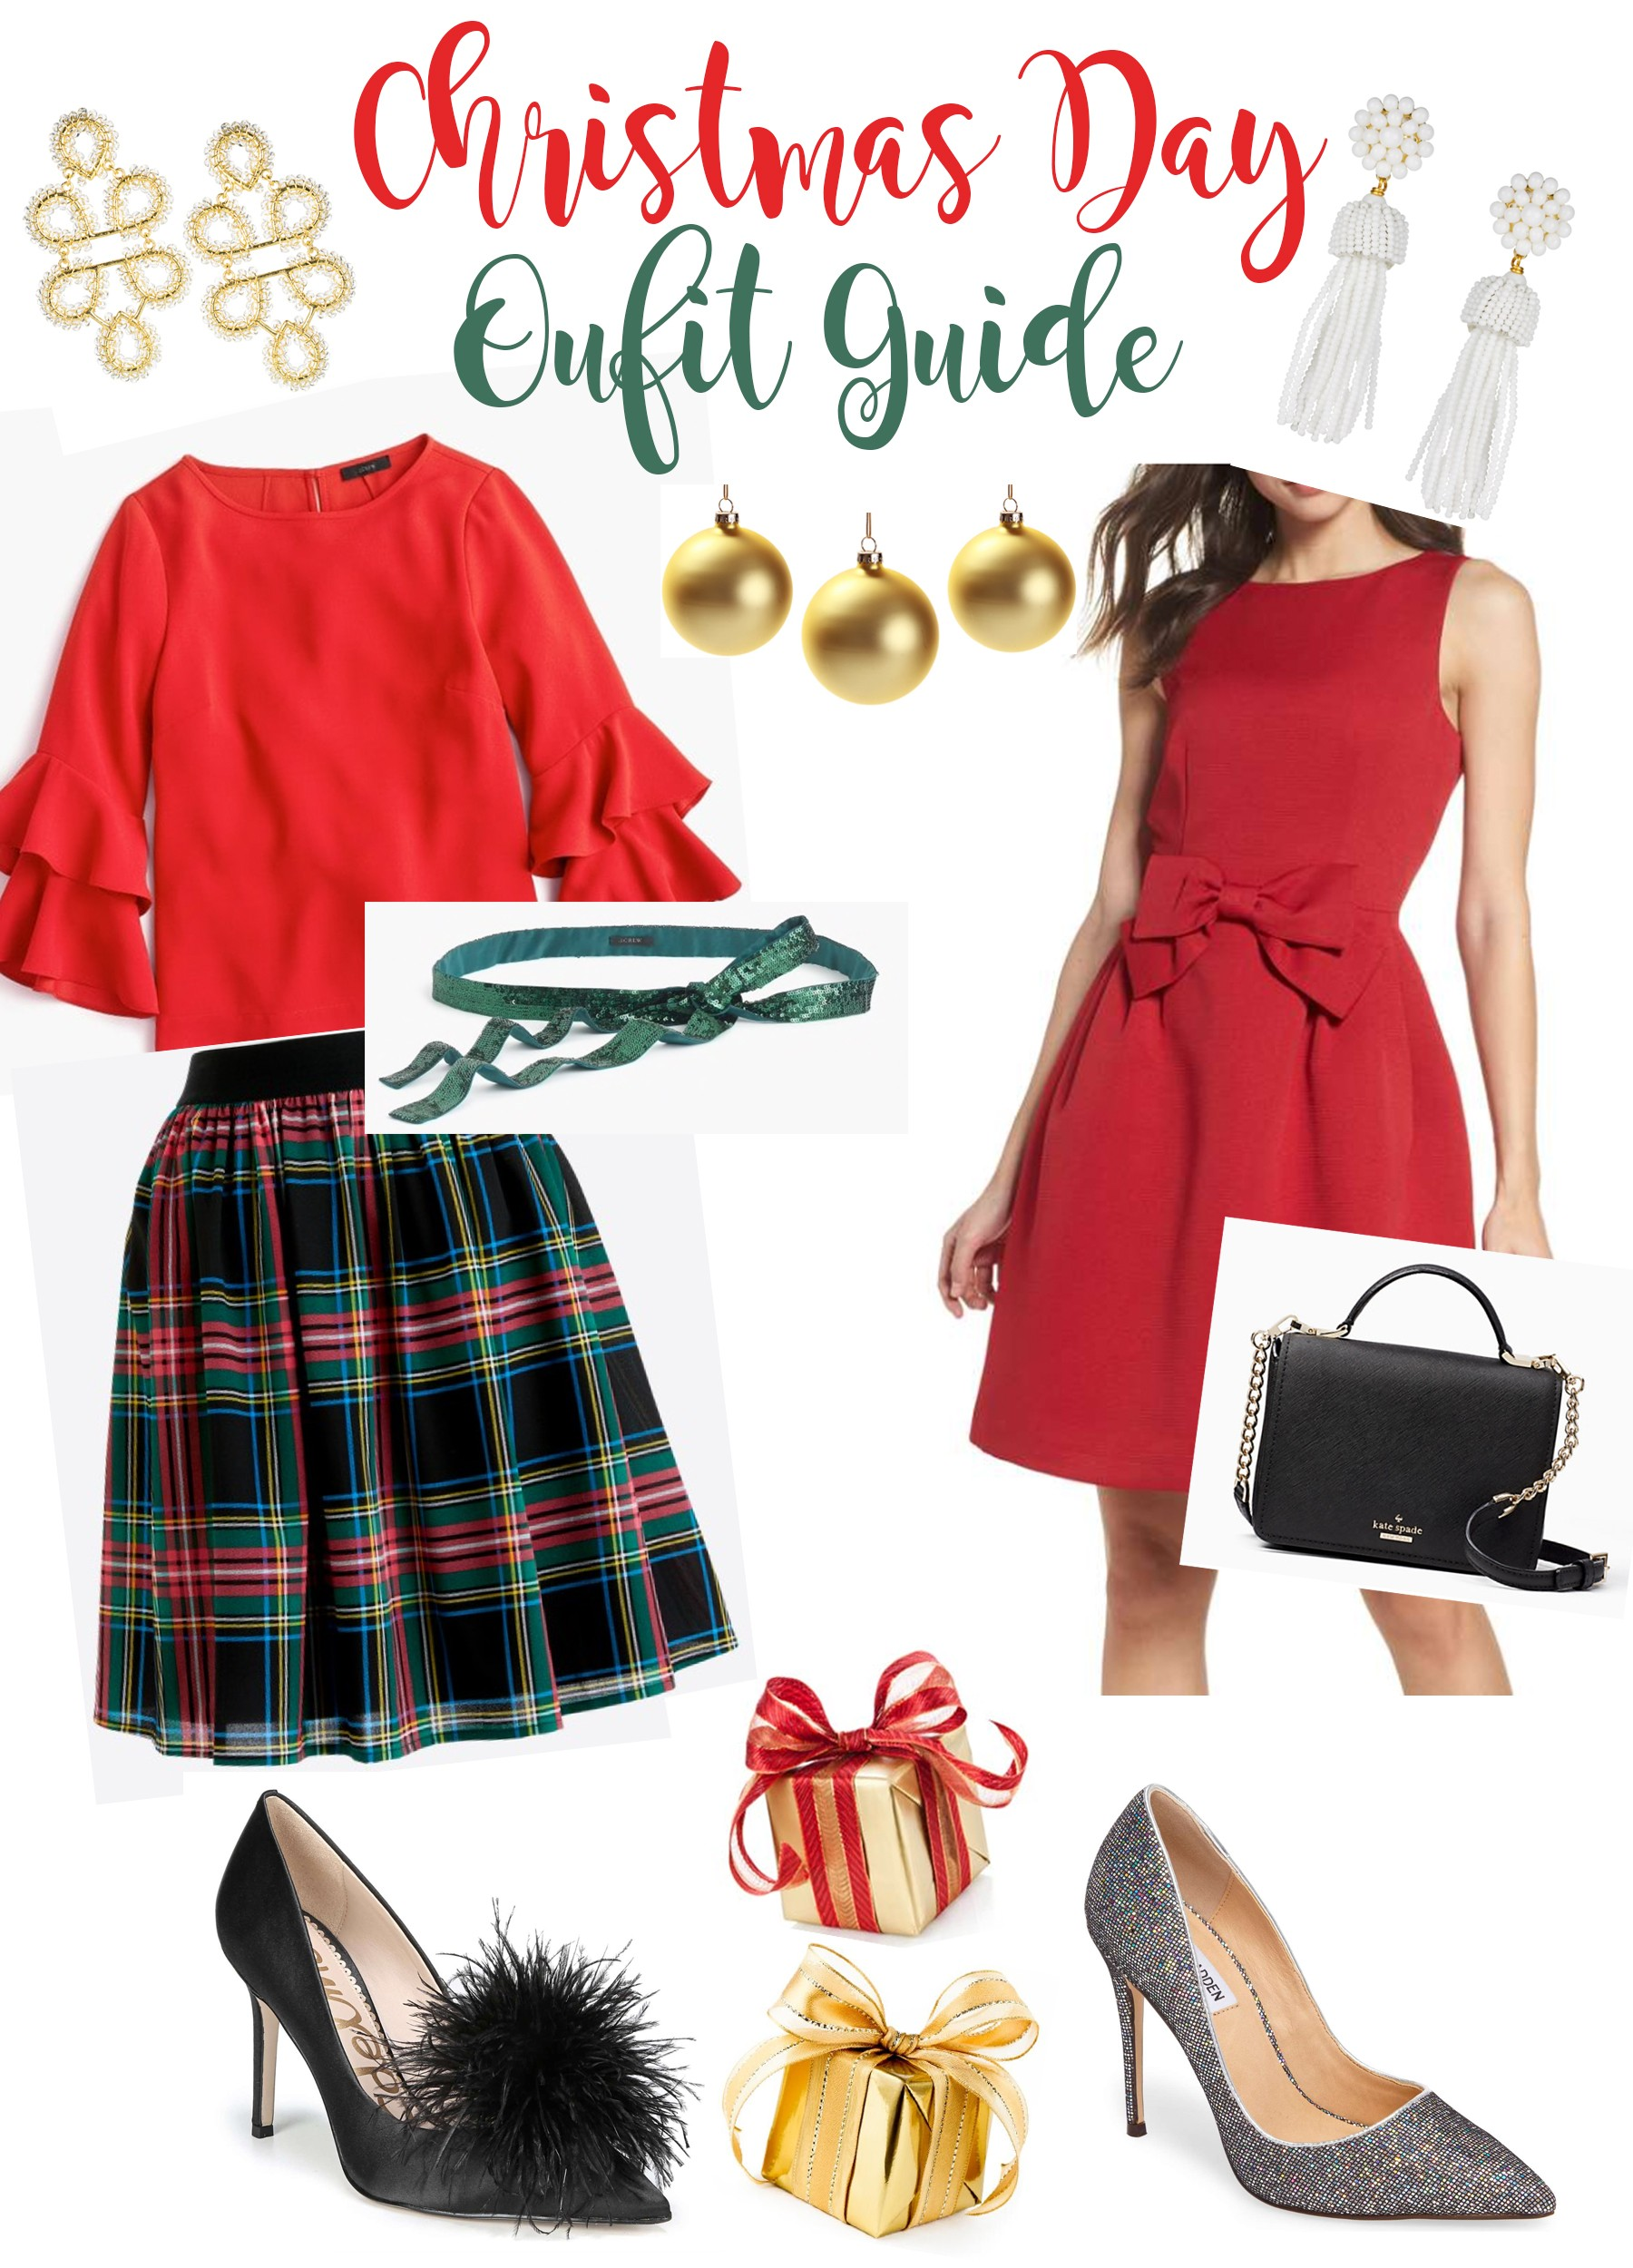 d748a41b35a6 Christmas songs are ringing and my Christmas tree has been lit:) Besides  stocking up on gifts I love to find the cutest Christmas Day outfit.